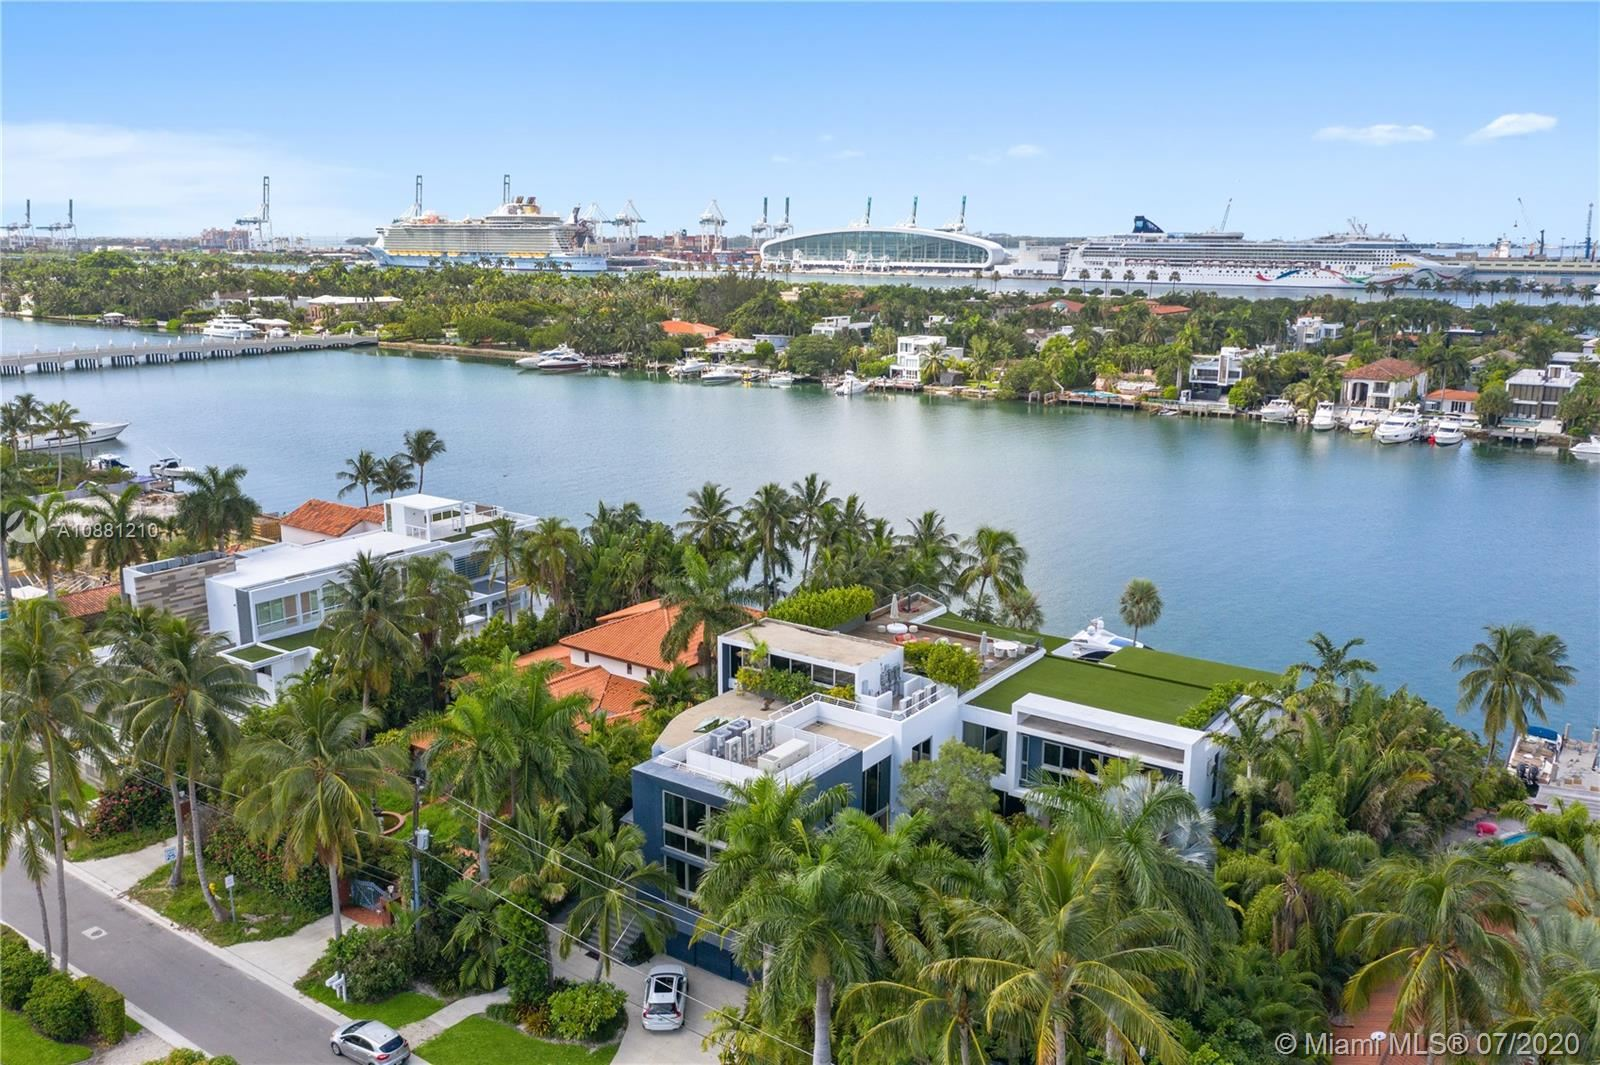 Photo 39 of Listing MLS a10881210 in 370 S Hibiscus Dr Miami Beach FL 33139